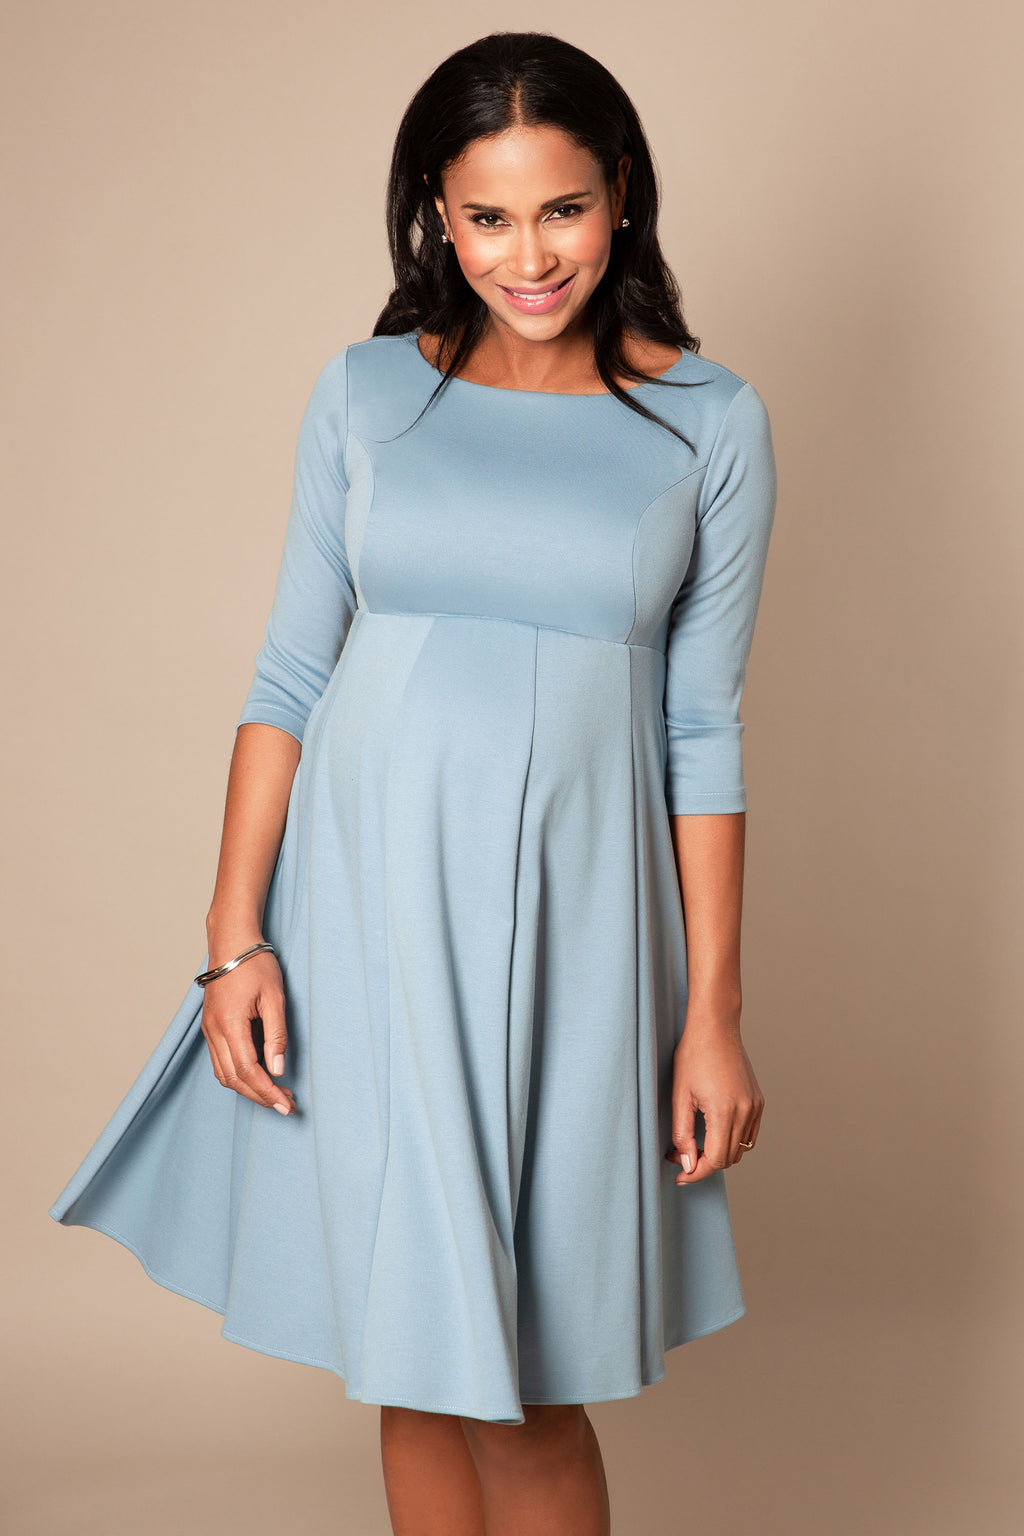 Sienna Maternity Dress in Cashmere Blue by Tiffany Rose - Seven Women Maternity